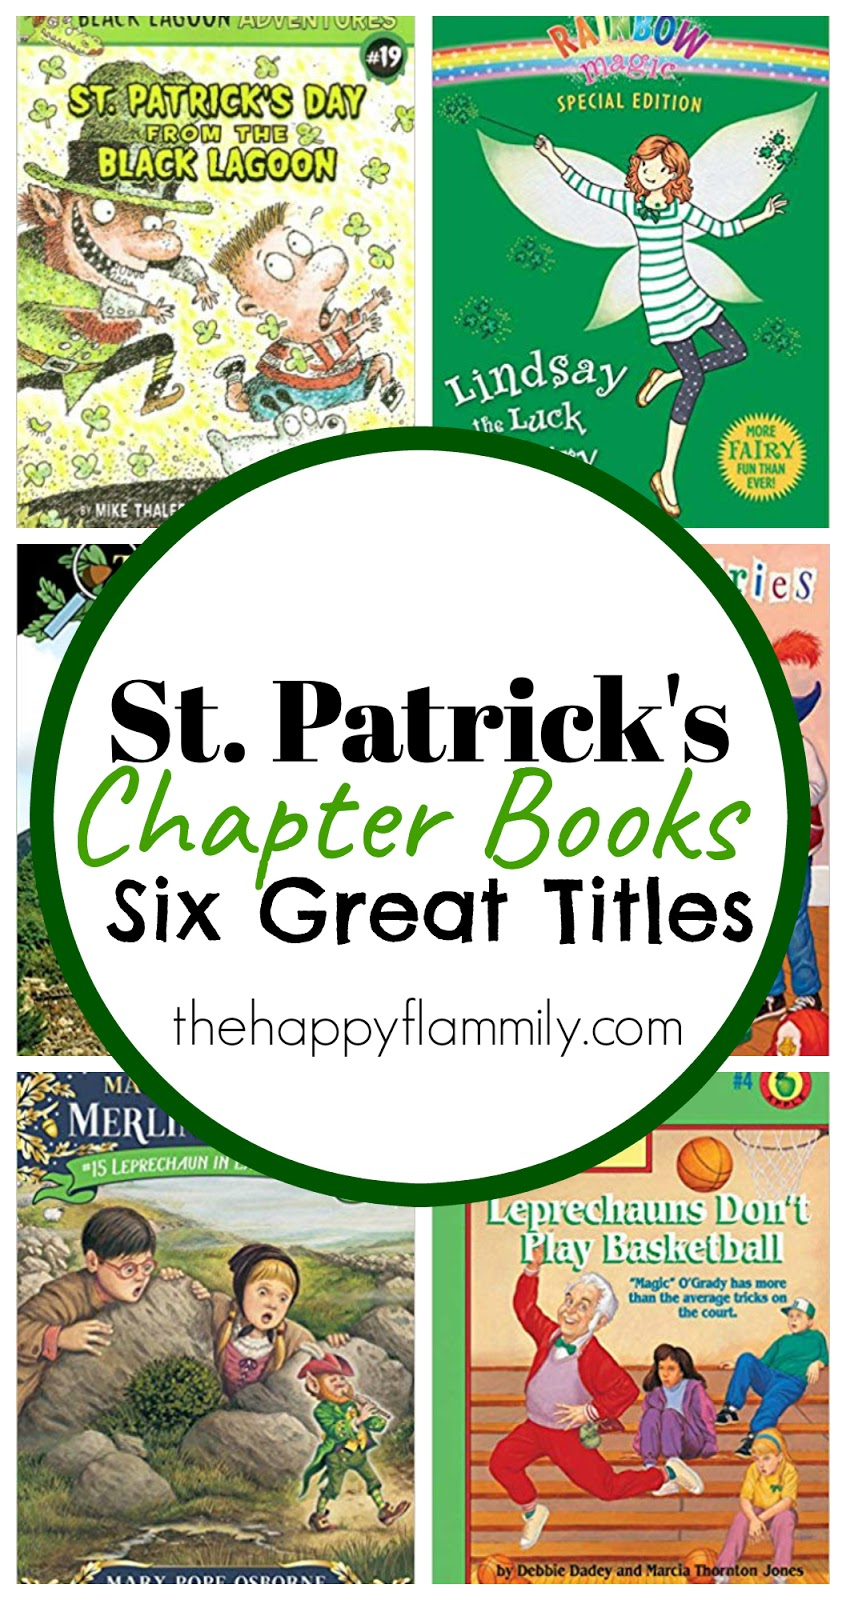 St Patricks day picture book recommendations. Best St Patricks day books for kids. St Patricks day chapter book ideas. Chapter books for St Patricks day. St Patricks Day book list ideas. Book lists for kids. March book recommendations for kids. Best St Patrick's Day Chapter books. #books #Booklist #reading #stpatricksbooks #elementarybooks #picturebooks #chapterbooks #middlegrade #fiction